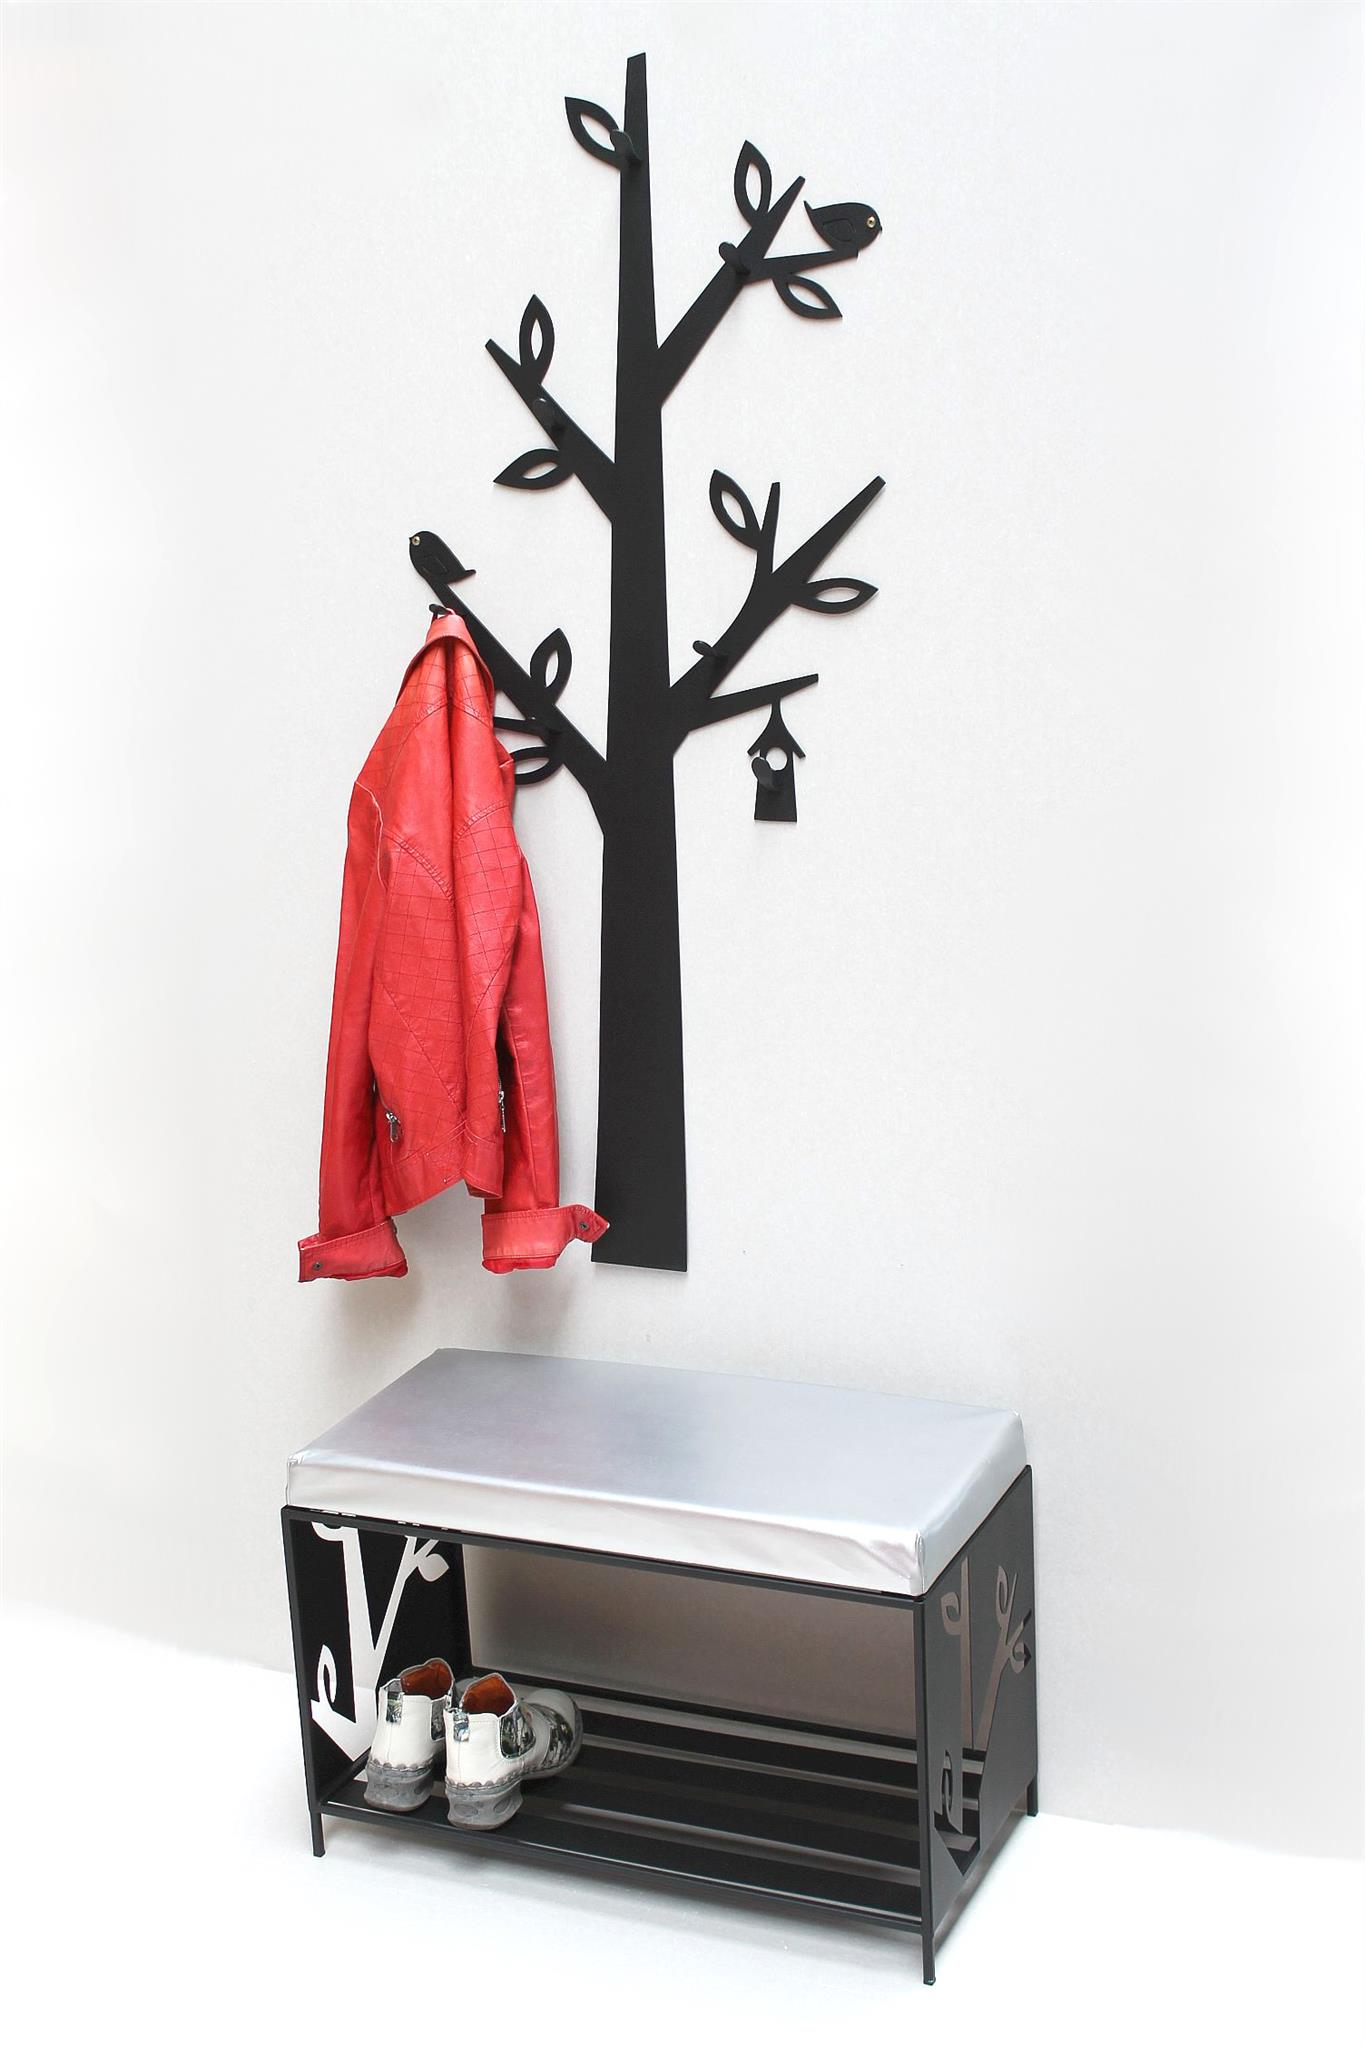 schuhregal mit sitzfl che wandgarderobe set baum metall. Black Bedroom Furniture Sets. Home Design Ideas